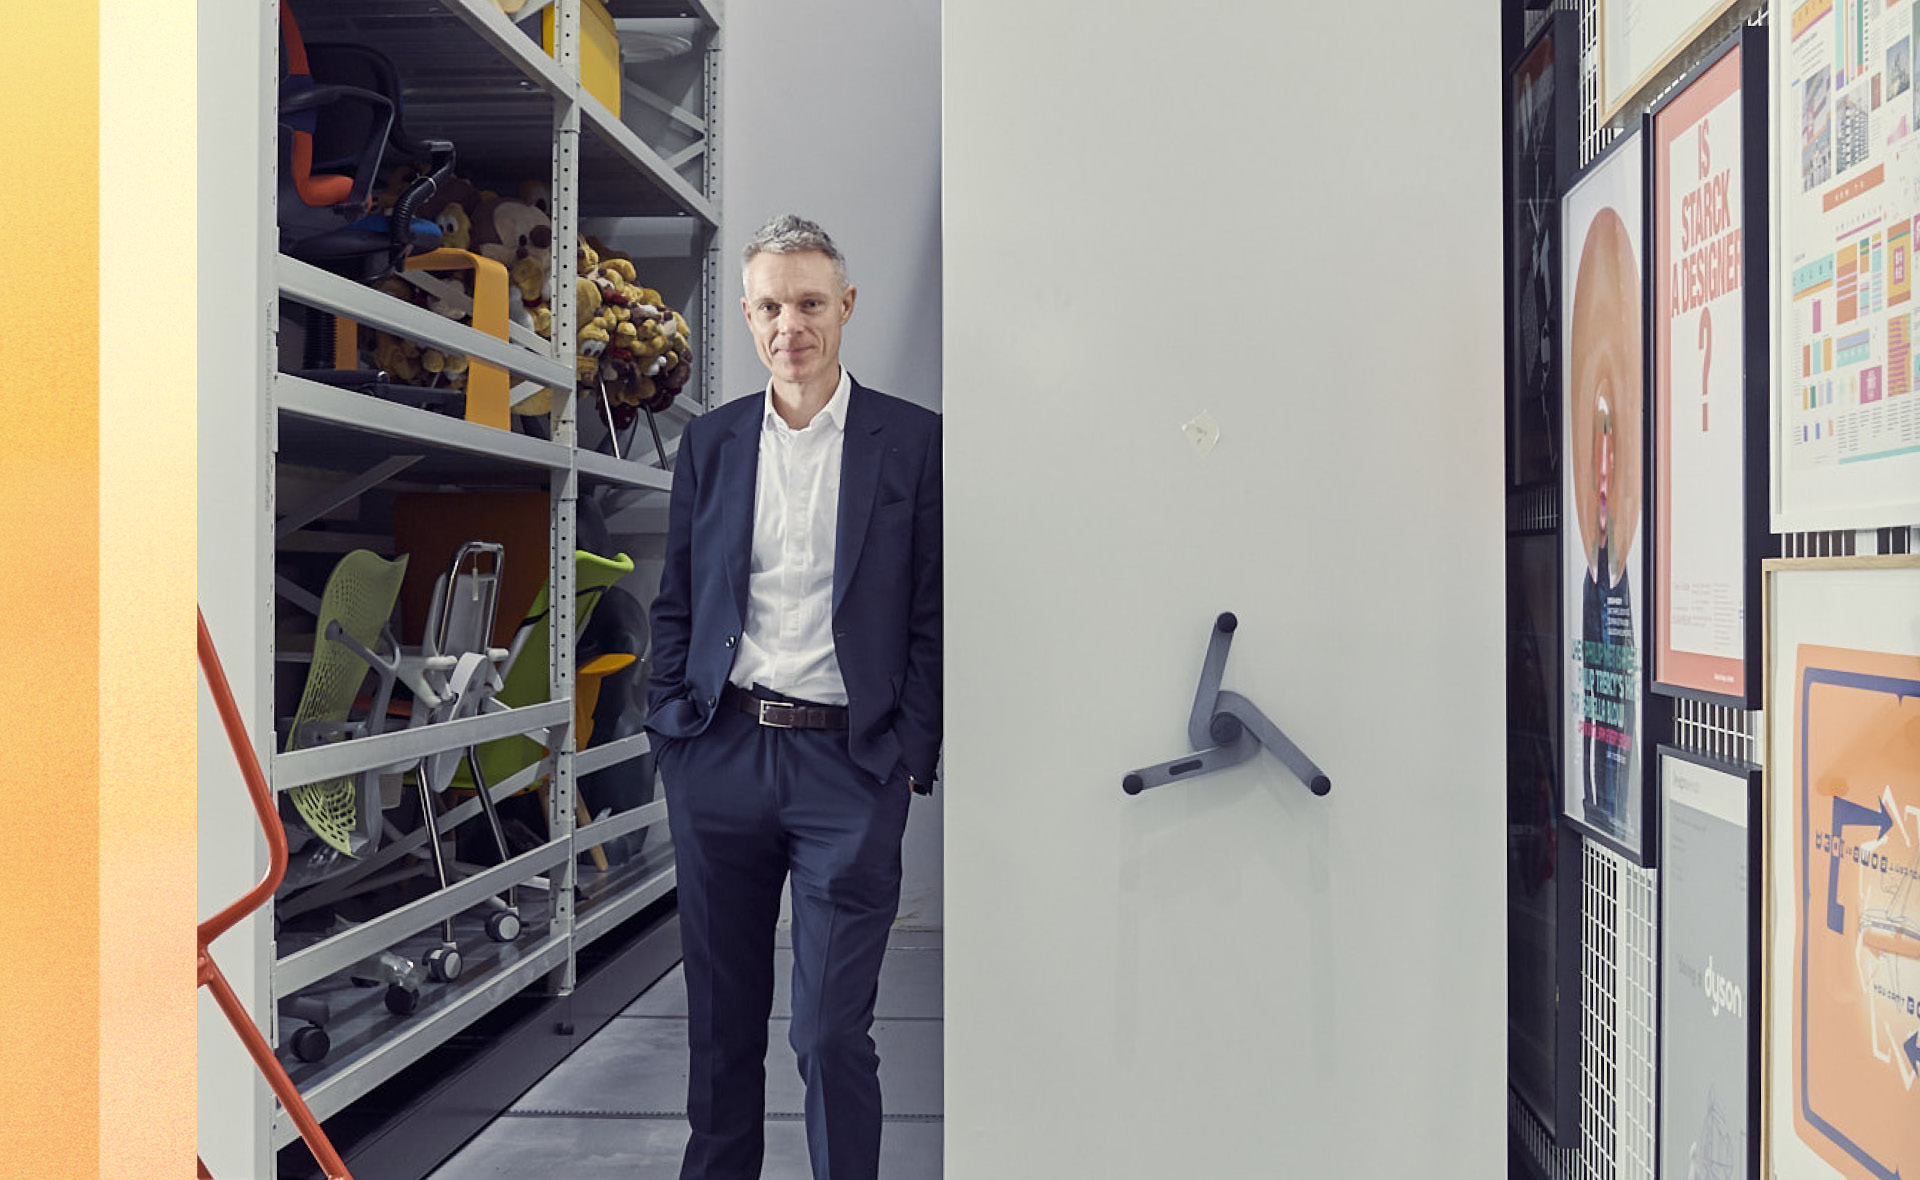 Tim Marlow, director and CEO of London's Design Museum